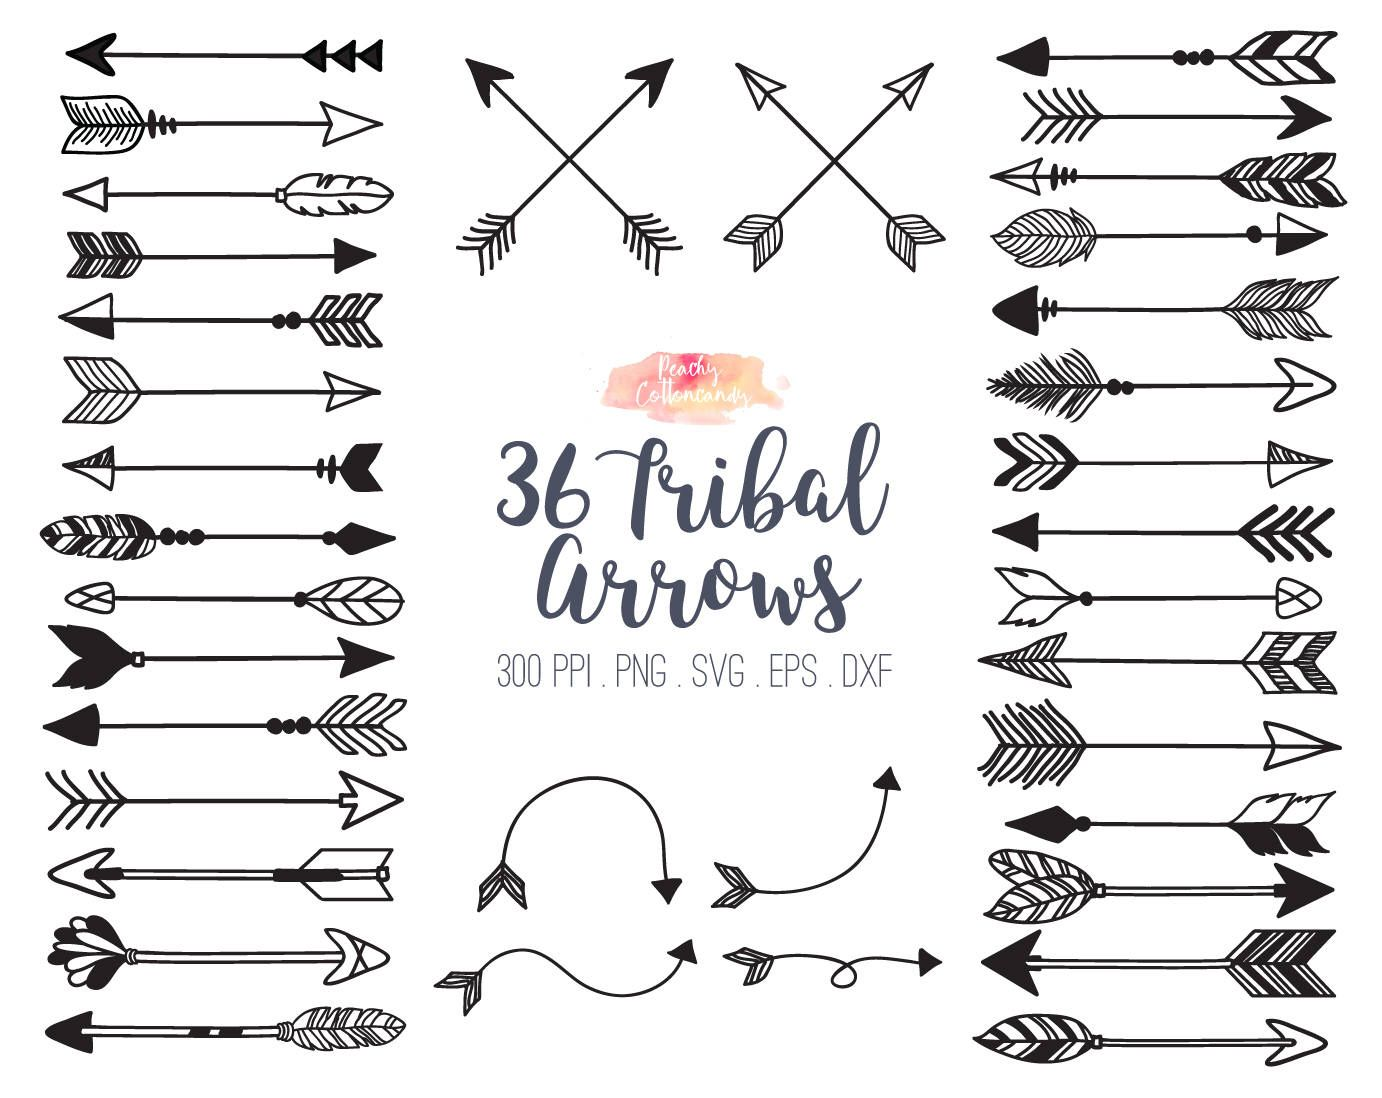 Pin By Tara Campbell On Silhouette Files Pinterest Arrow Clip Printed Circuit Board Pictures Free Use Image 042054 Freefoto Buy 2 Get 1 36 Tribal Svg Dxf Eps Vector Arrows Clipart